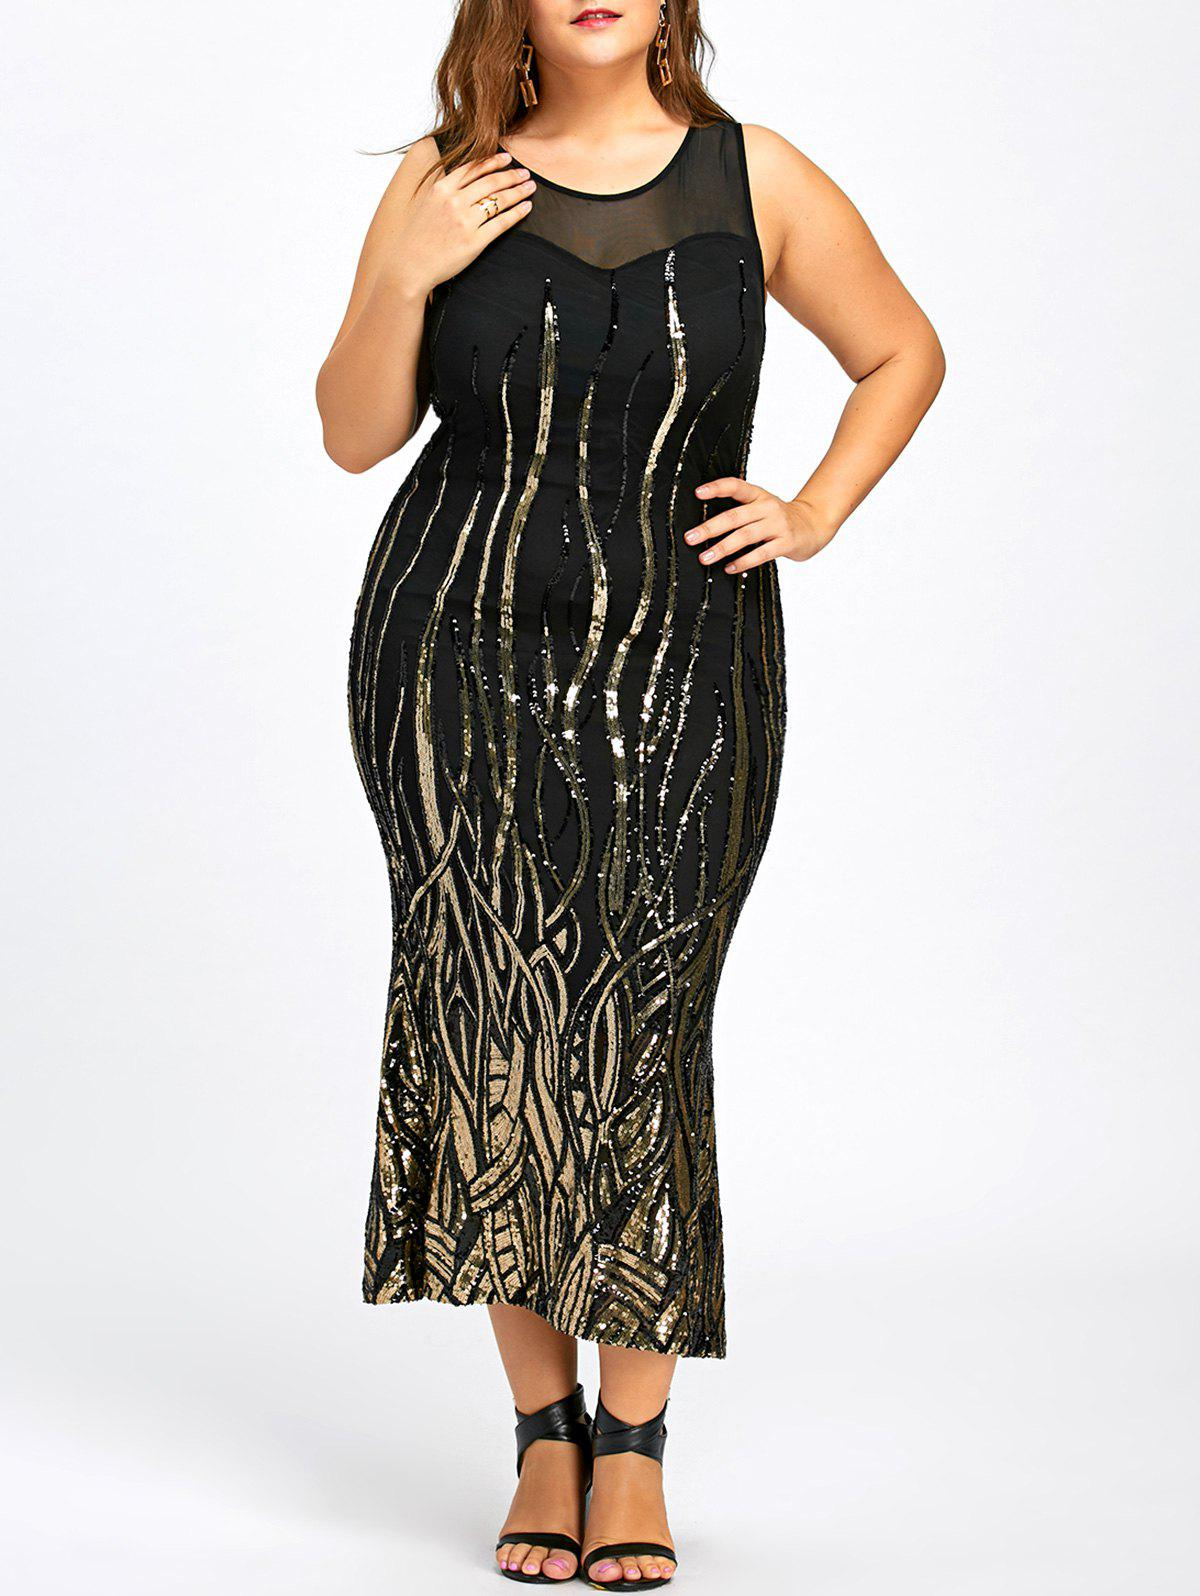 Sequin Plus Size Mesh Panel Party Dress 226121104